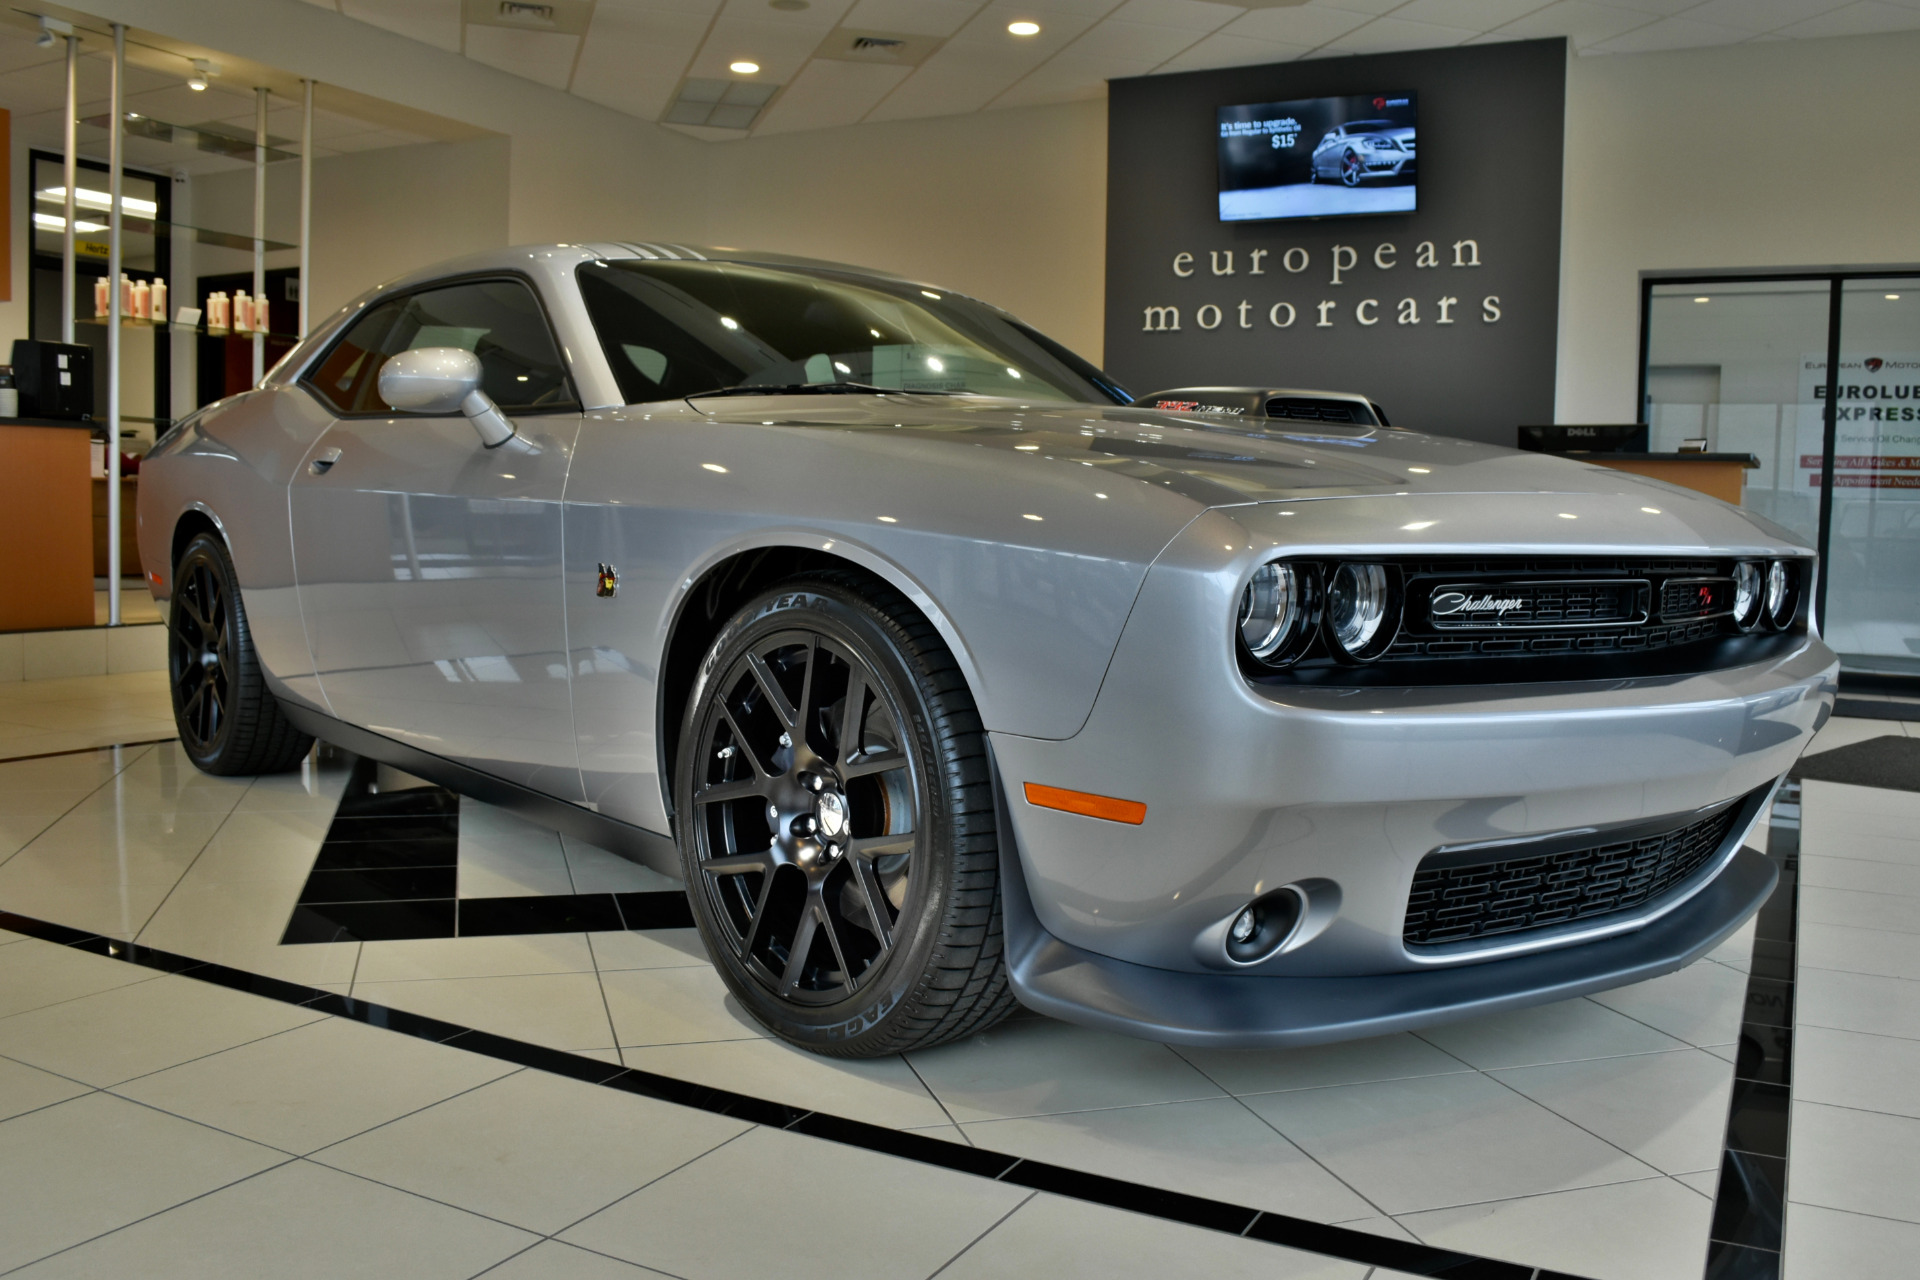 Challenger Shaker For Sale >> 2015 Dodge Challenger R T Scat Pack Shaker For Sale Near Middletown